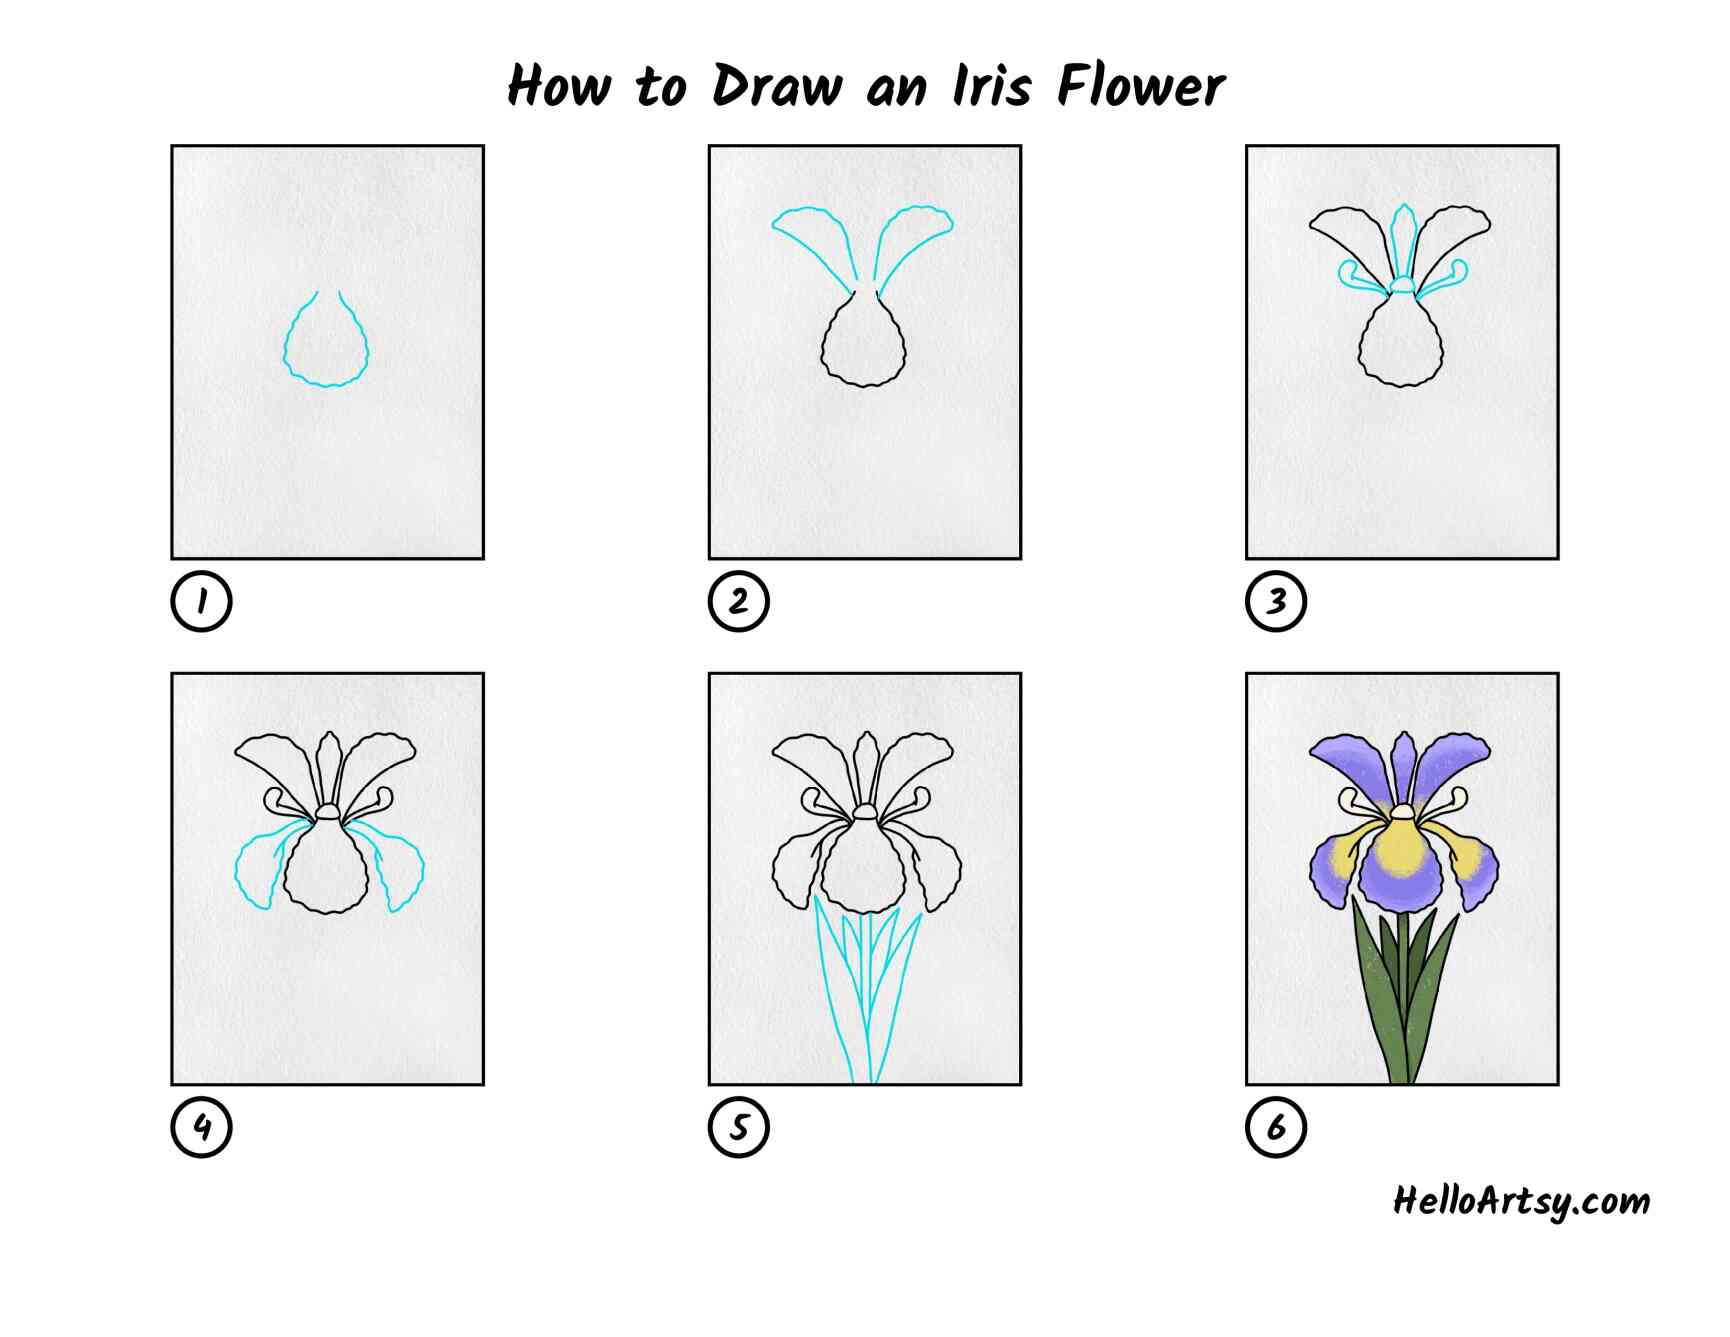 How To Draw An Iris Flower: All Steps